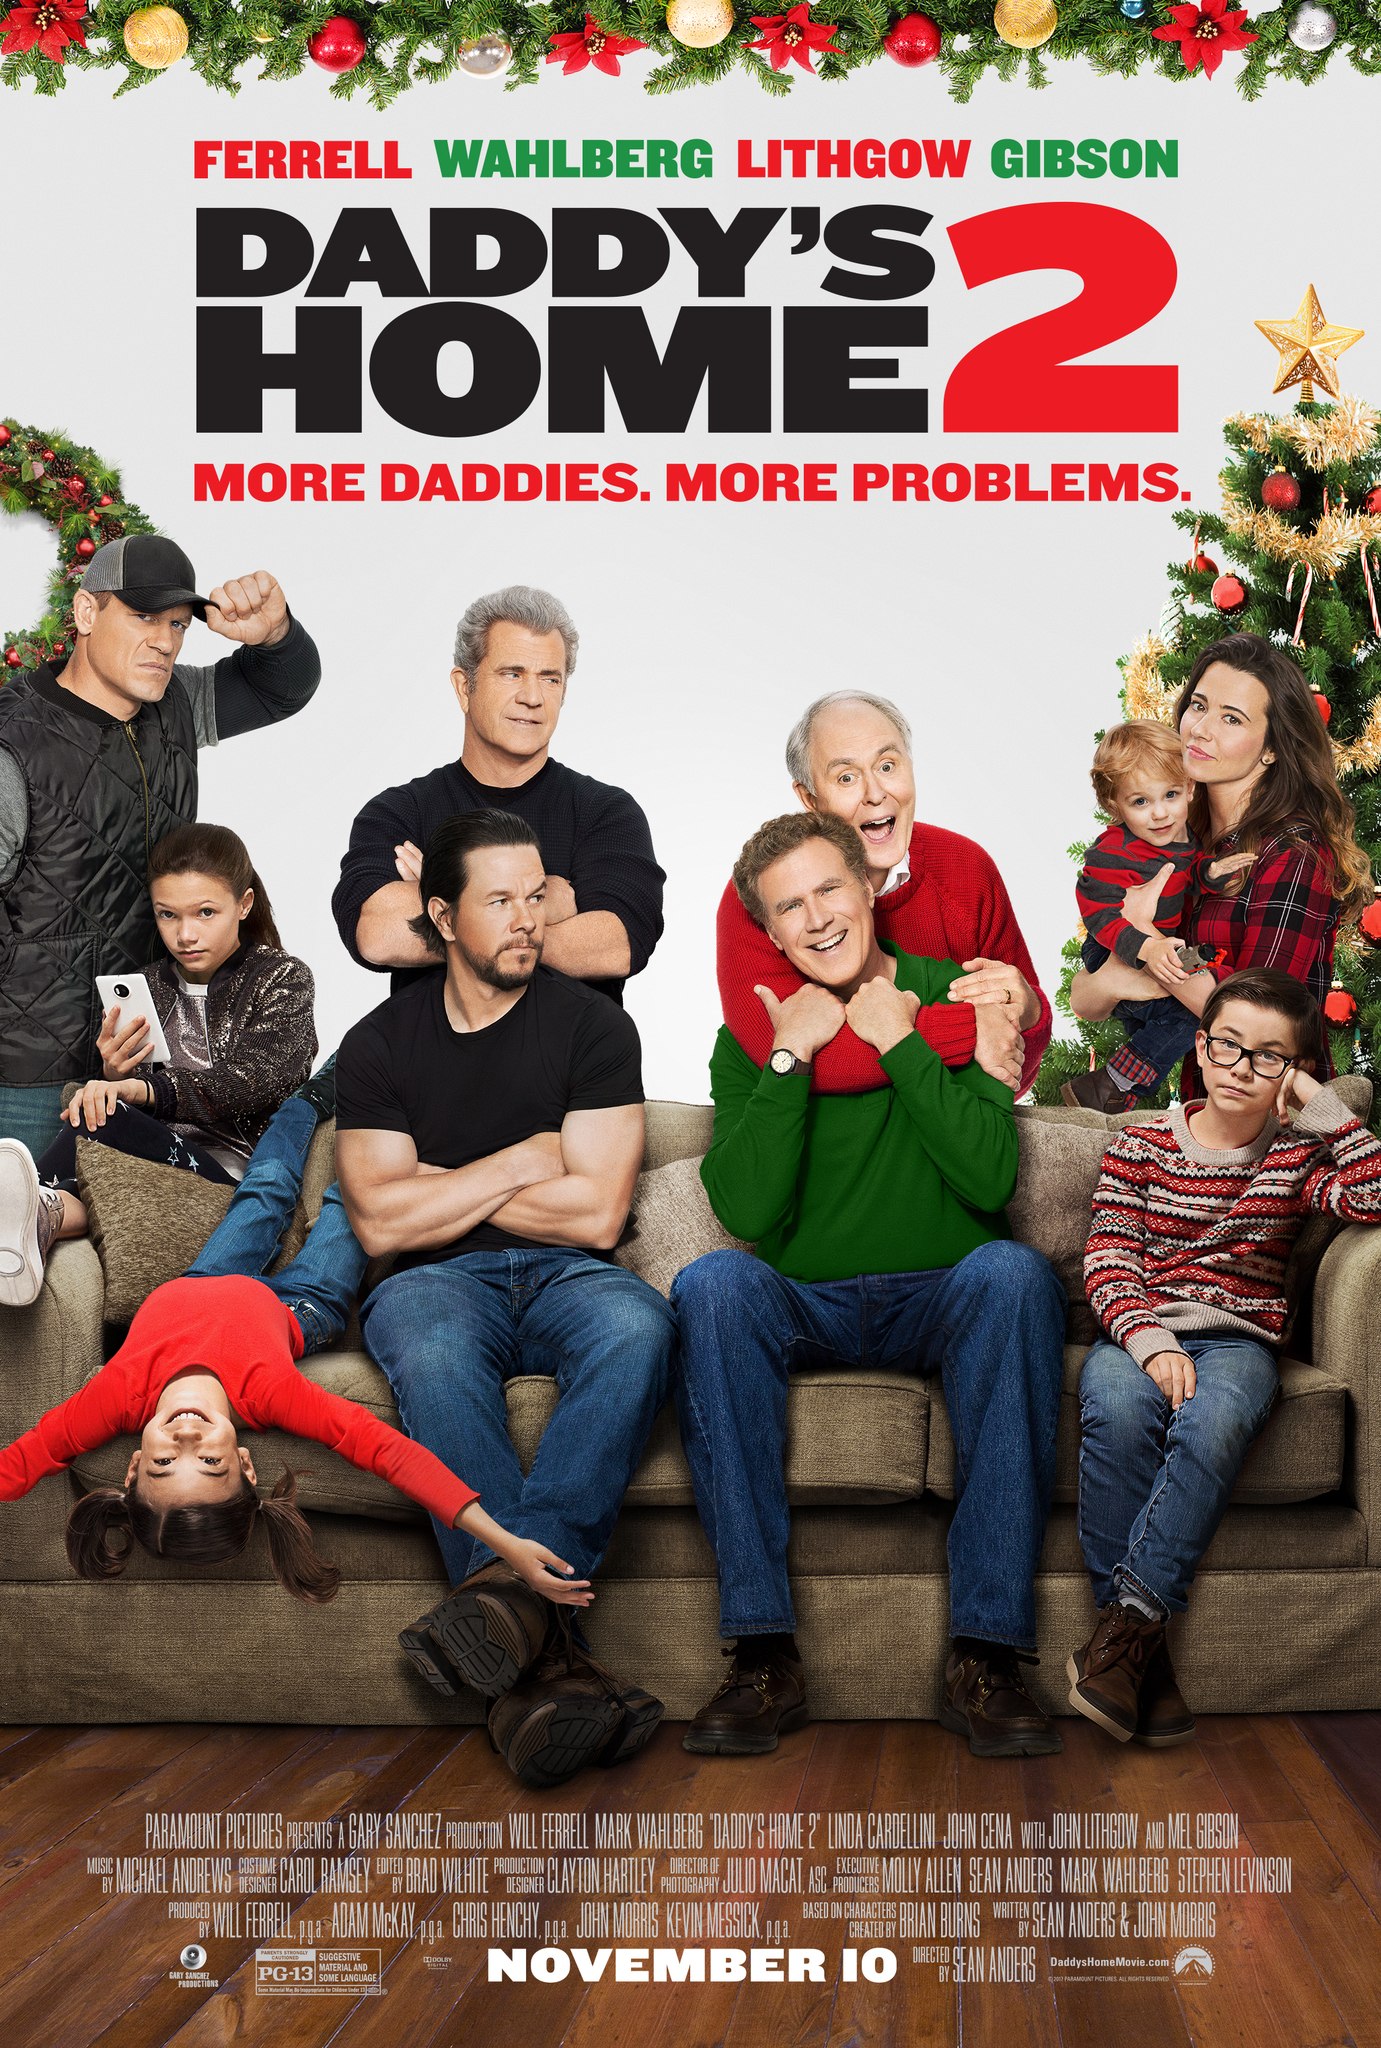 daddys home 2 movie torrent